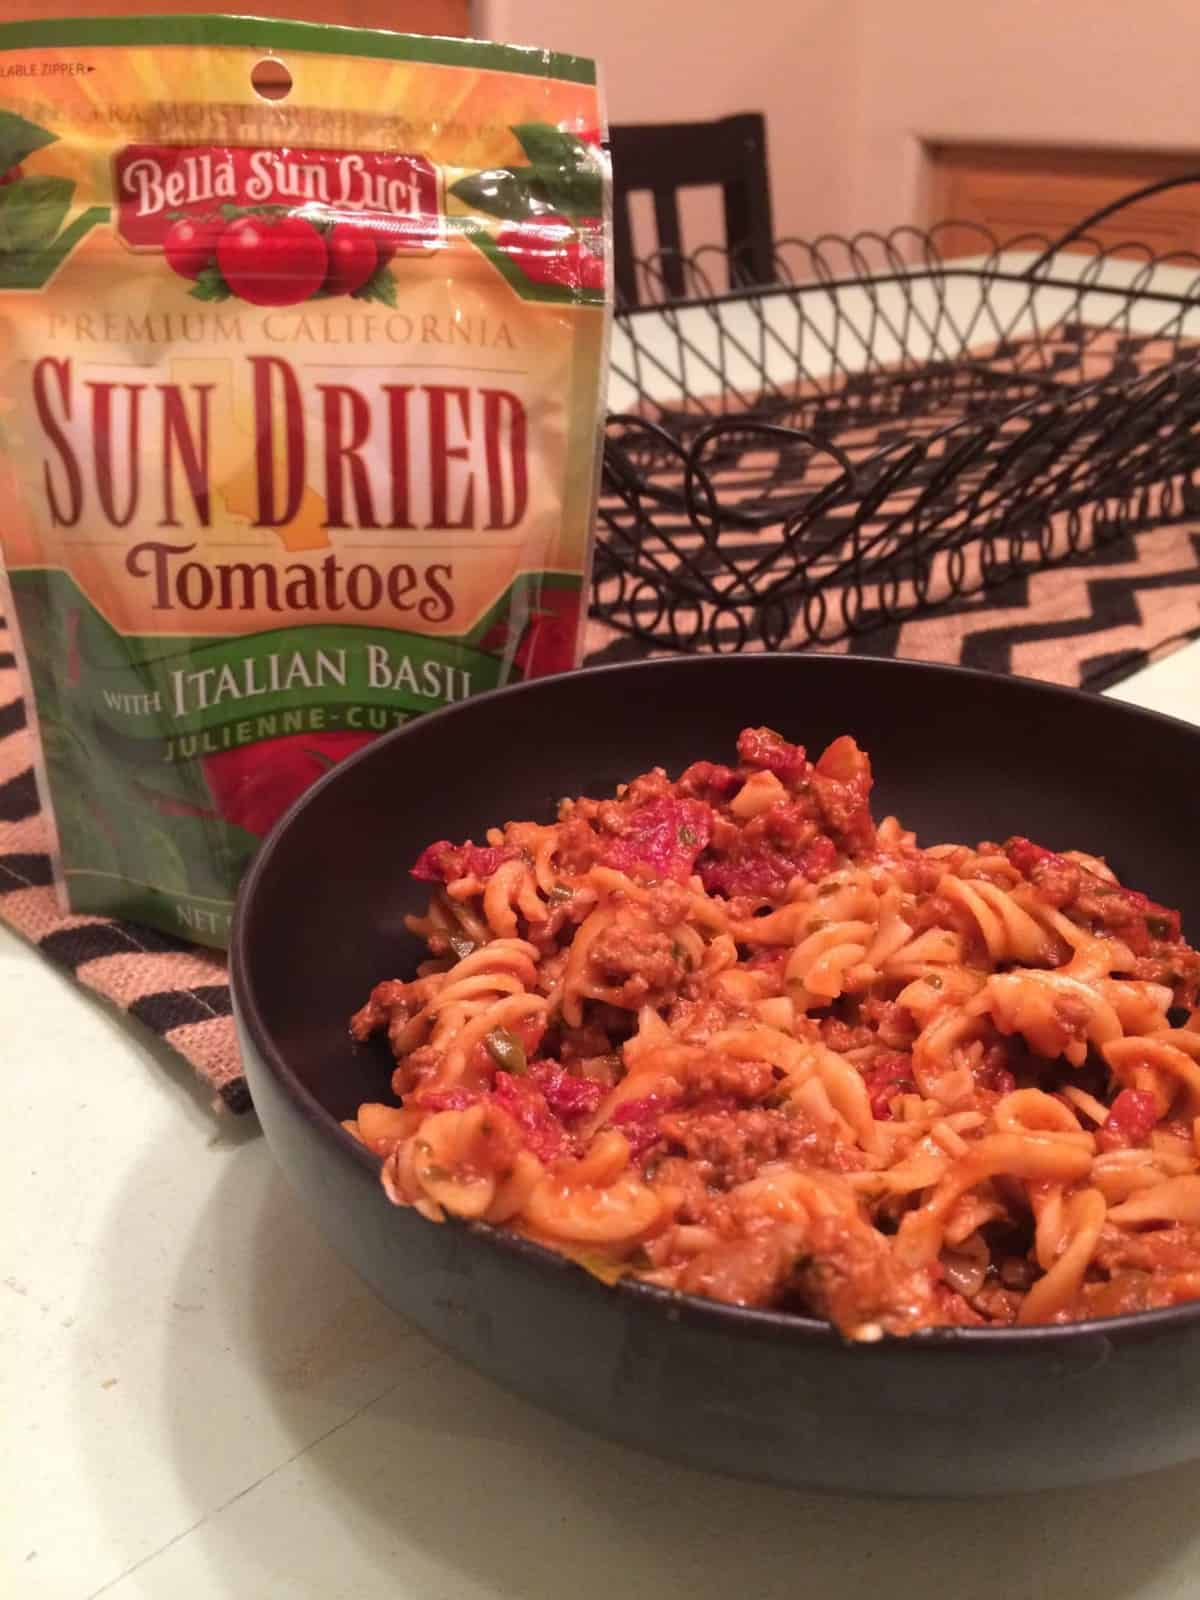 Bella Sun Luci Sun-dried Tomatoes Feature & Giveaway!!